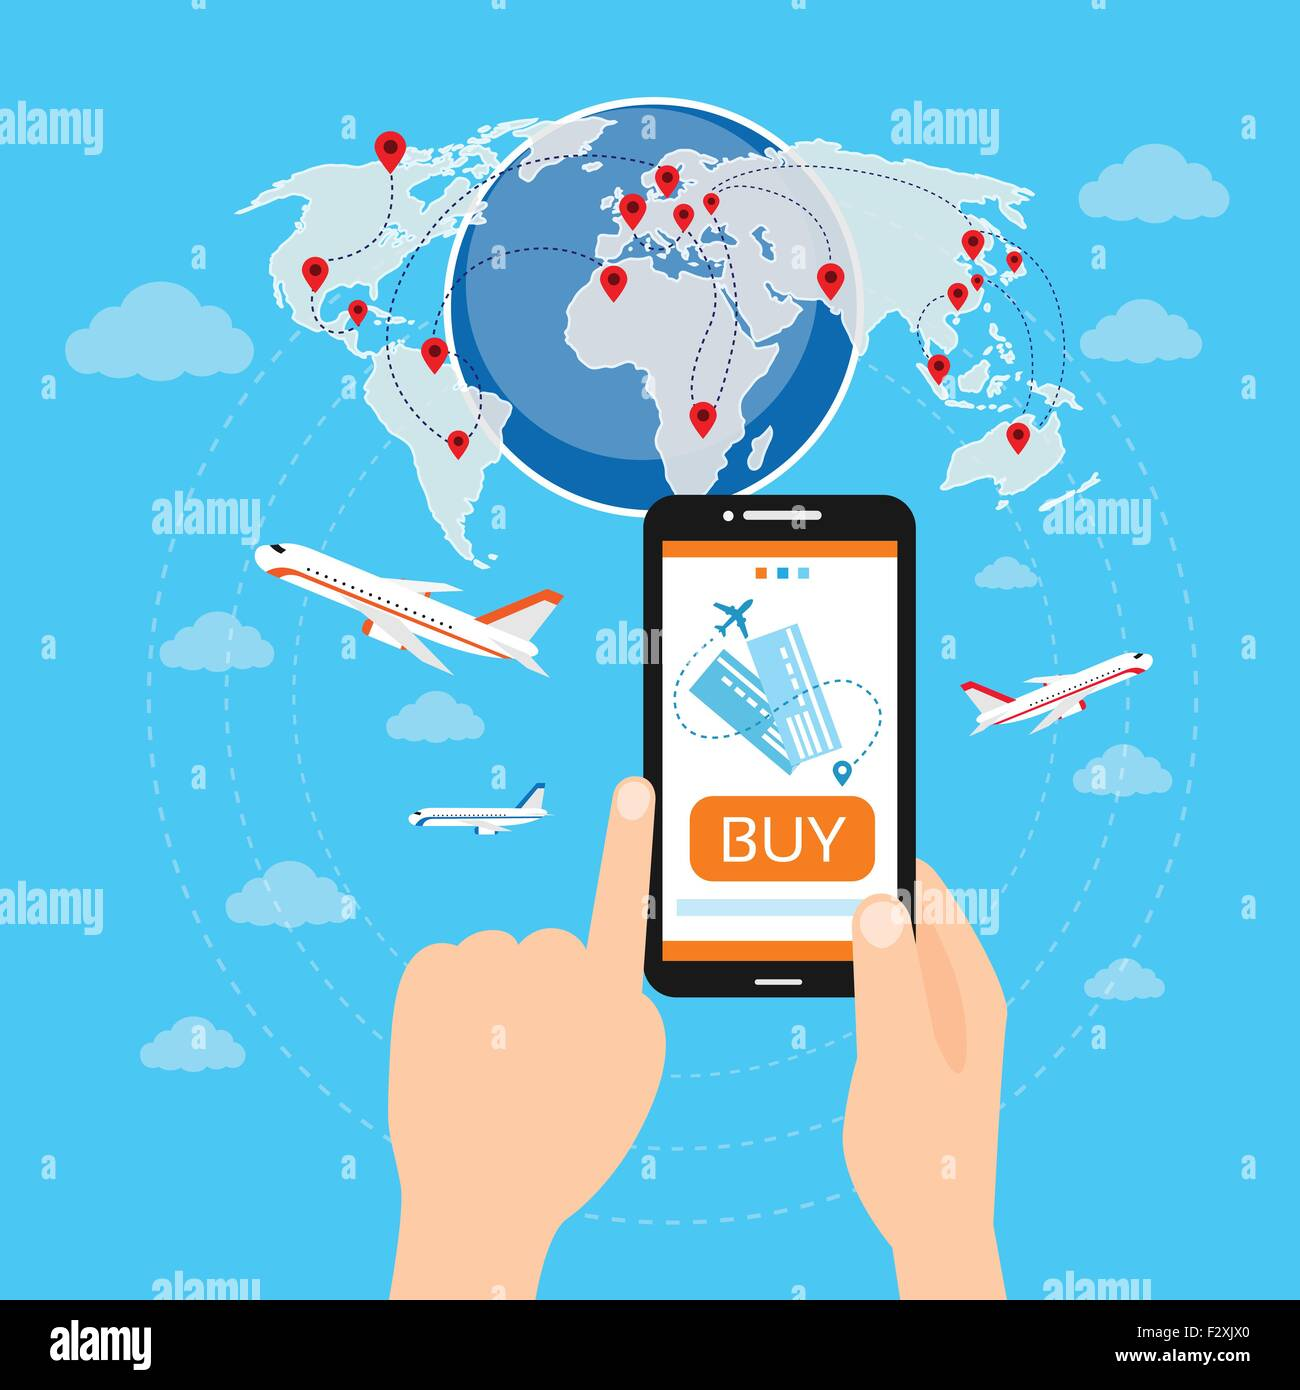 Buy ticket online smart phone application globe world map travel buy ticket online smart phone application globe world map travel vacation trip booking air plane flight gumiabroncs Gallery